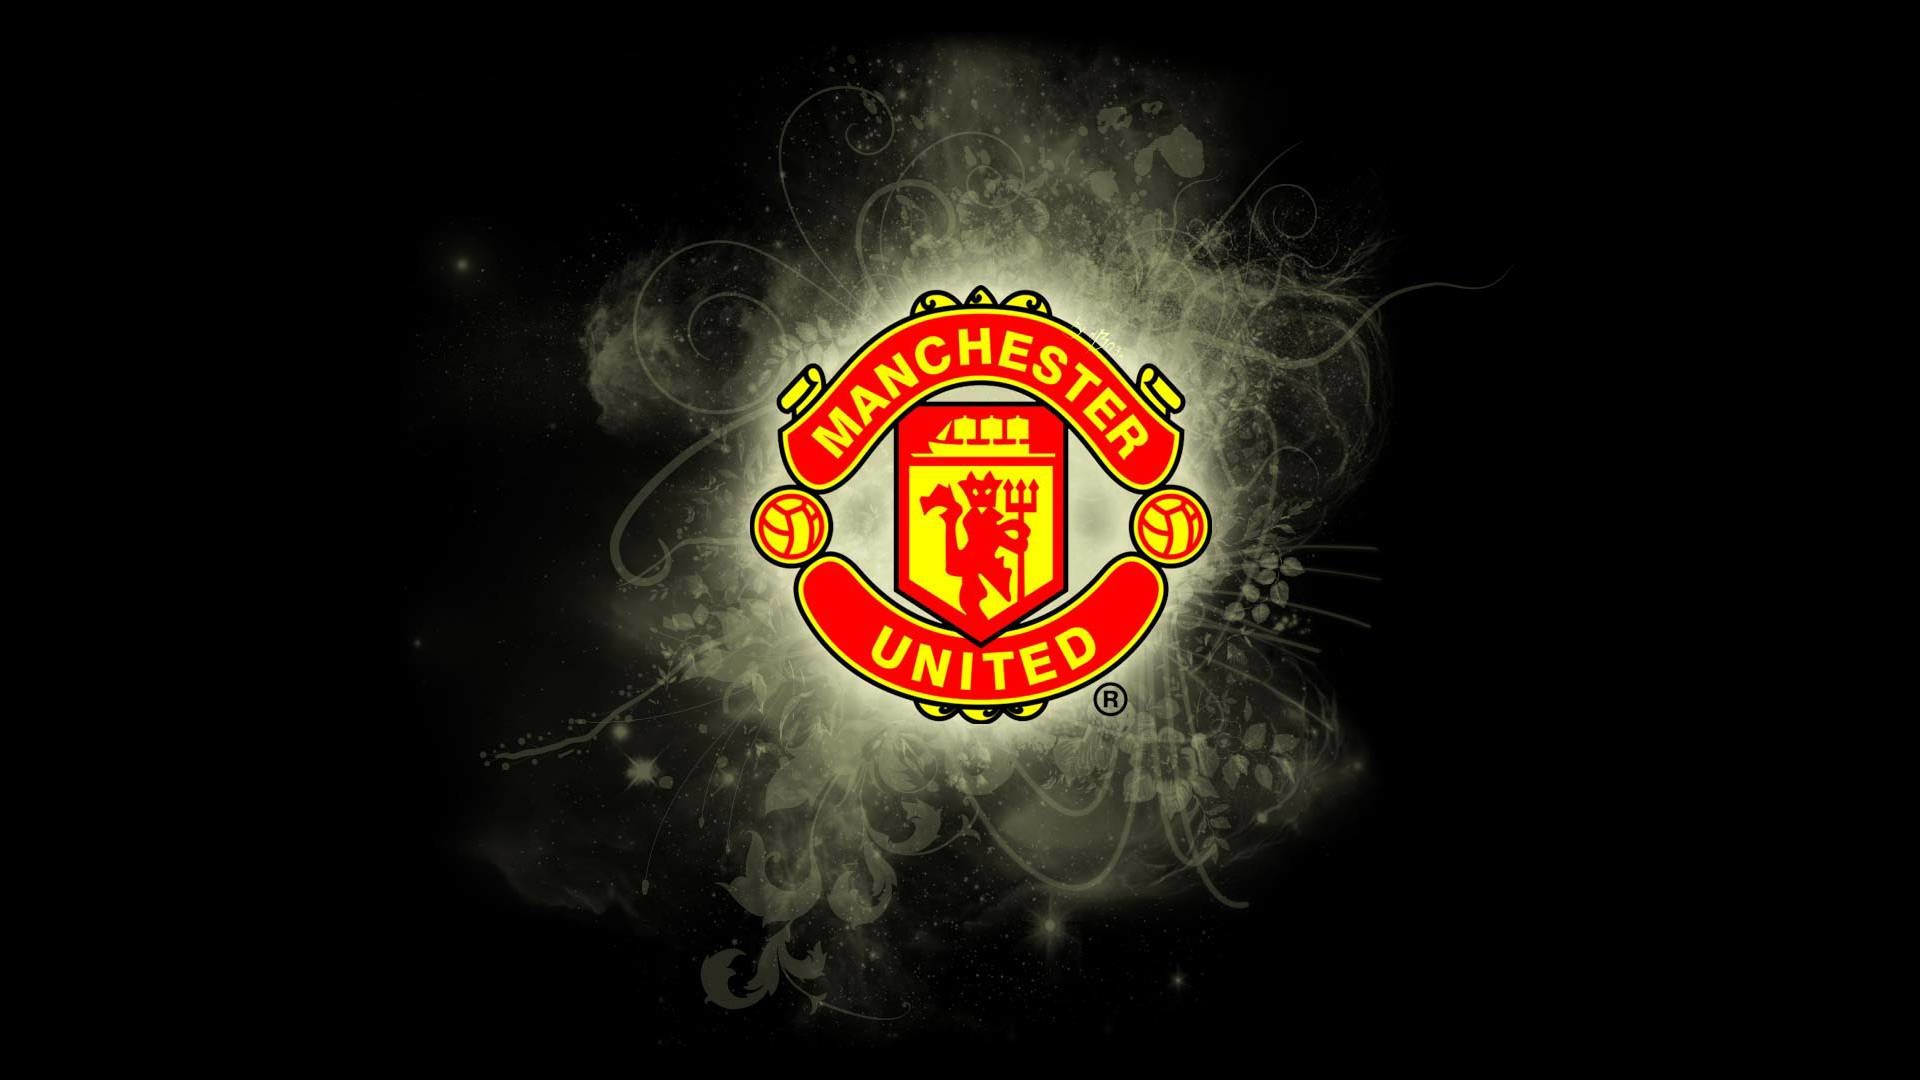 1920x1080 Manchester United Wallpaper For Iphone 4 Wallpaper | Football .